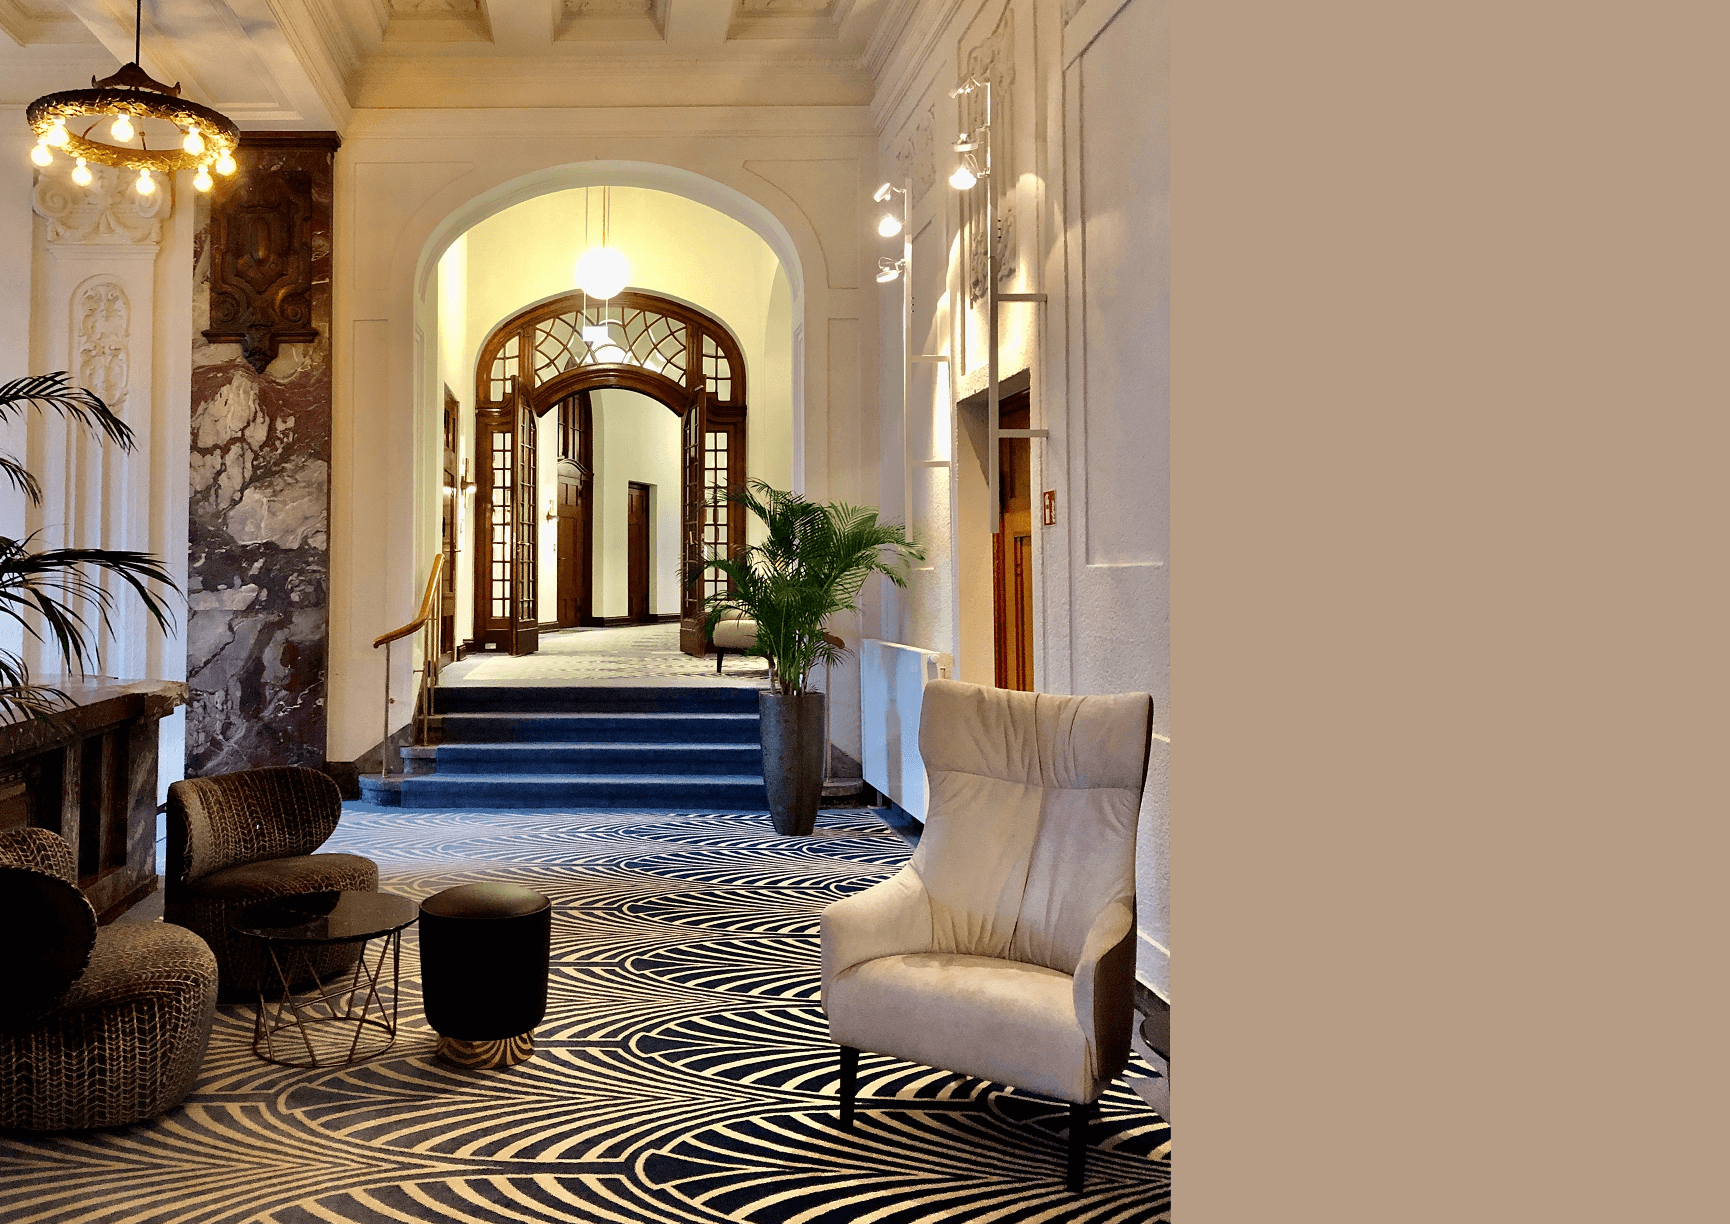 interior design of a hotel hallway with a wooden stained glass arch and marble accent wall